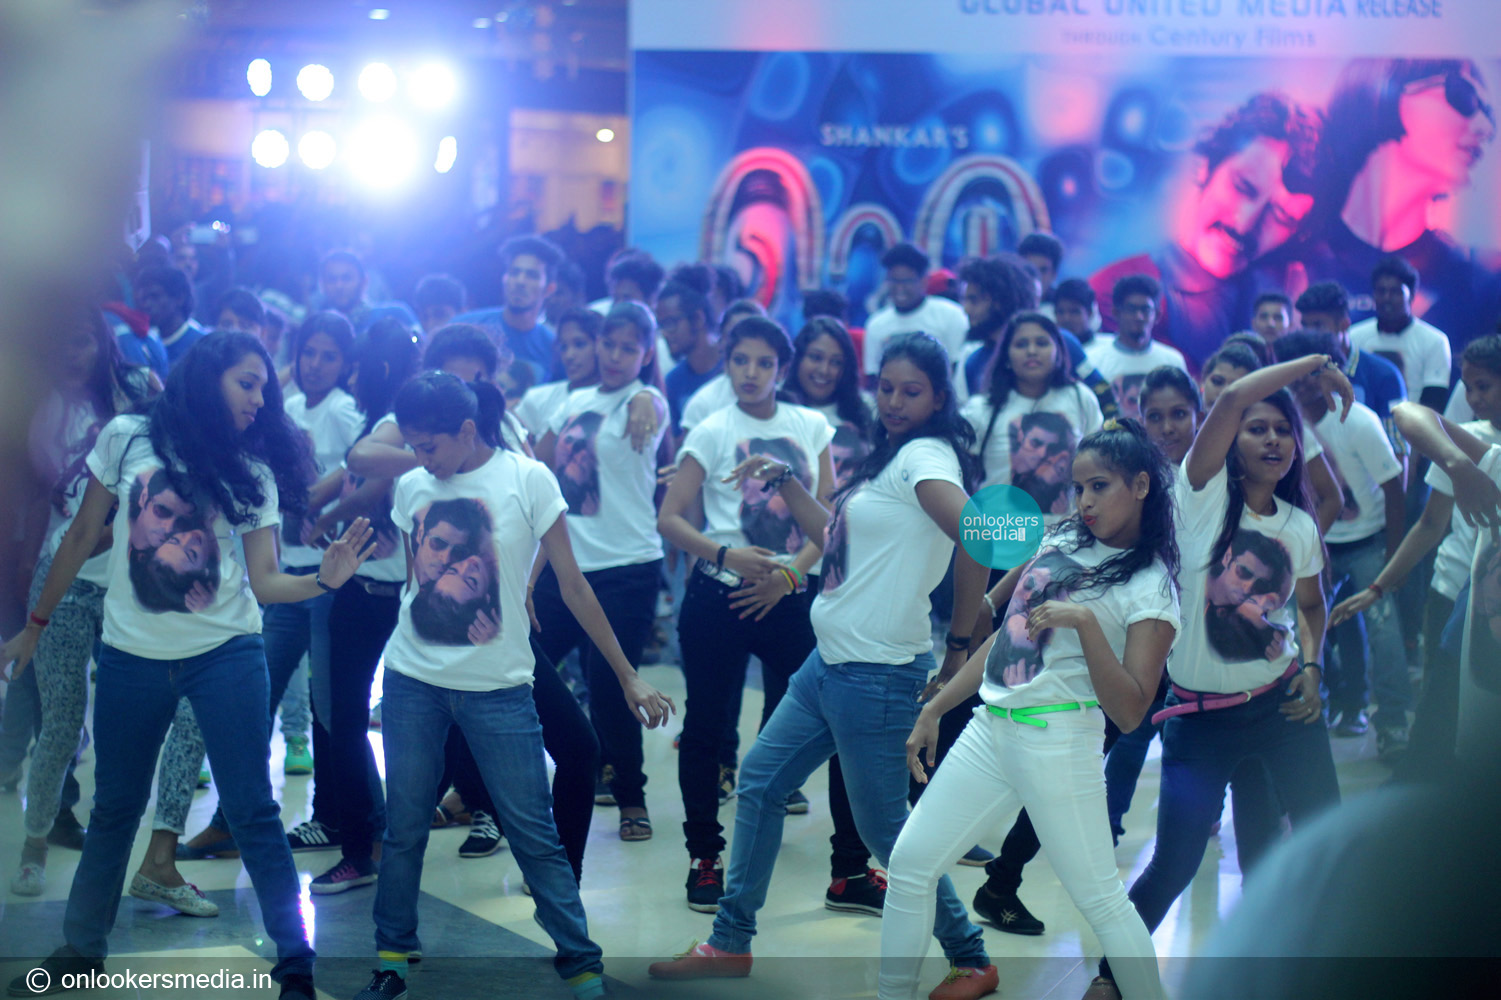 http://onlookersmedia.in/wp-content/uploads/2015/01/I-promotional-function-at-Lulu-mall-Kerala-Vikram-Amy-Jackson-Onlookers-Media-36.jpg